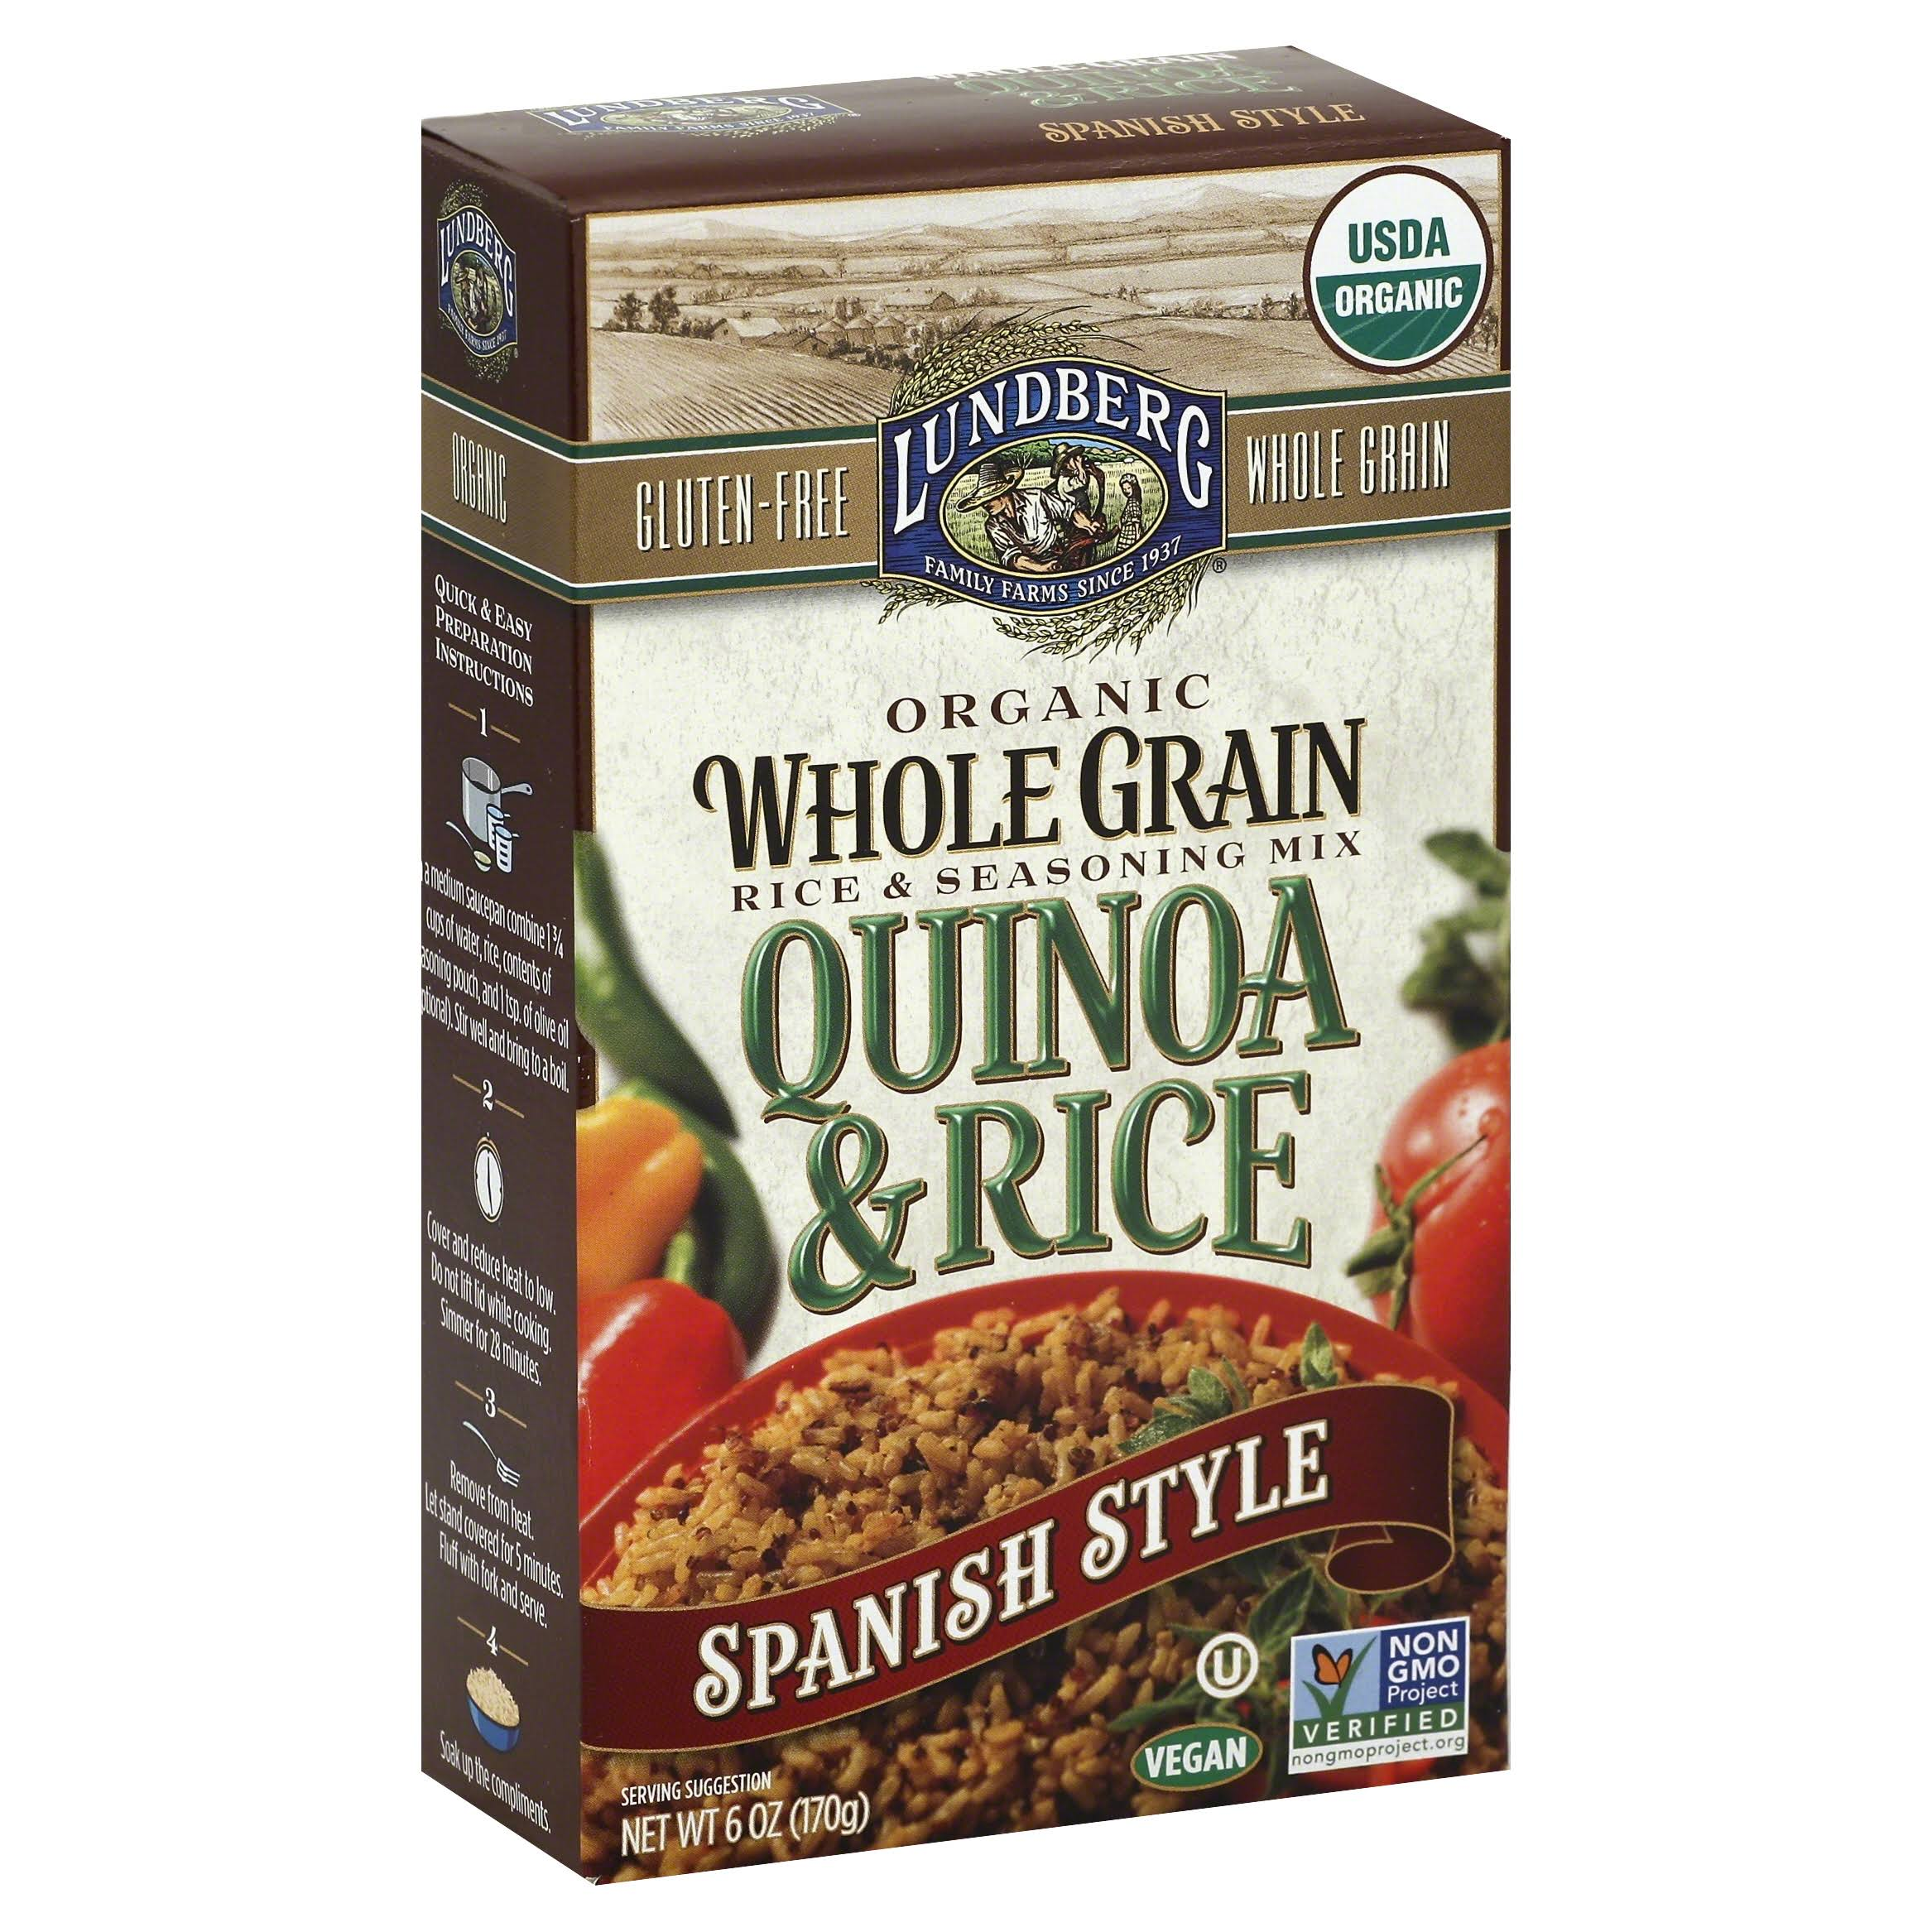 Lundberg Whole Grain Quinoa & Rice - Spanish Style, 6oz